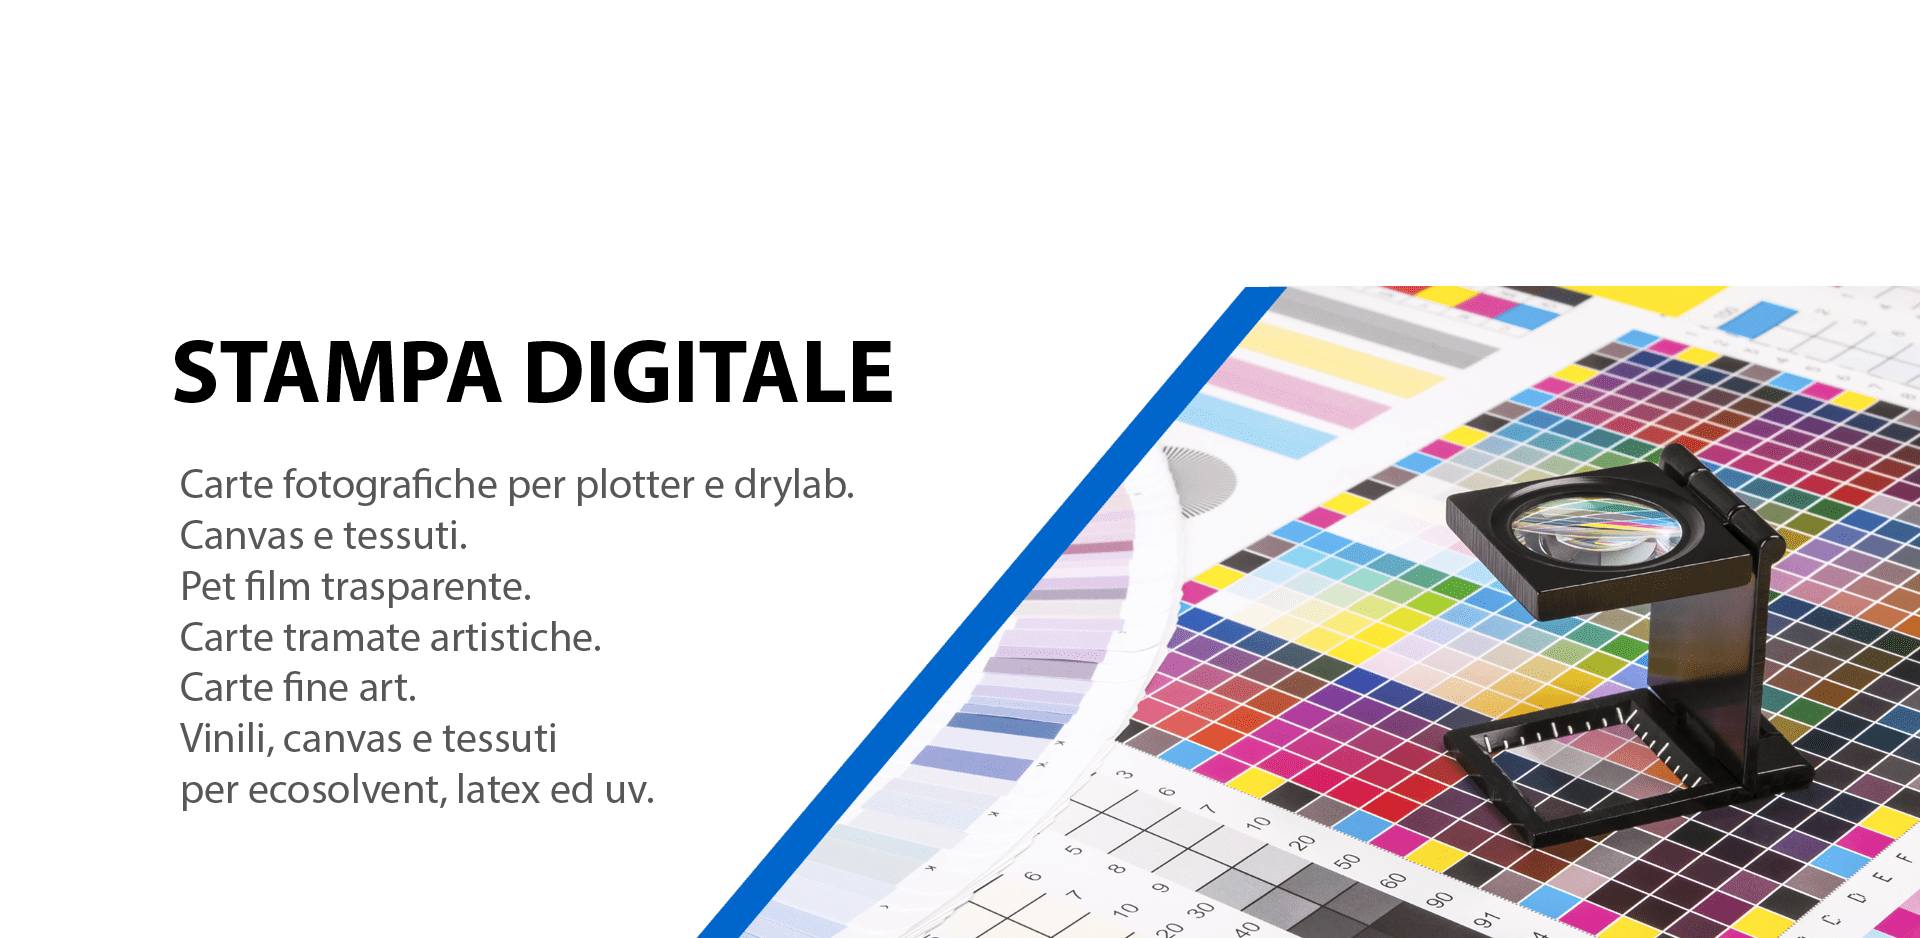 Materiali per la stampa digitale